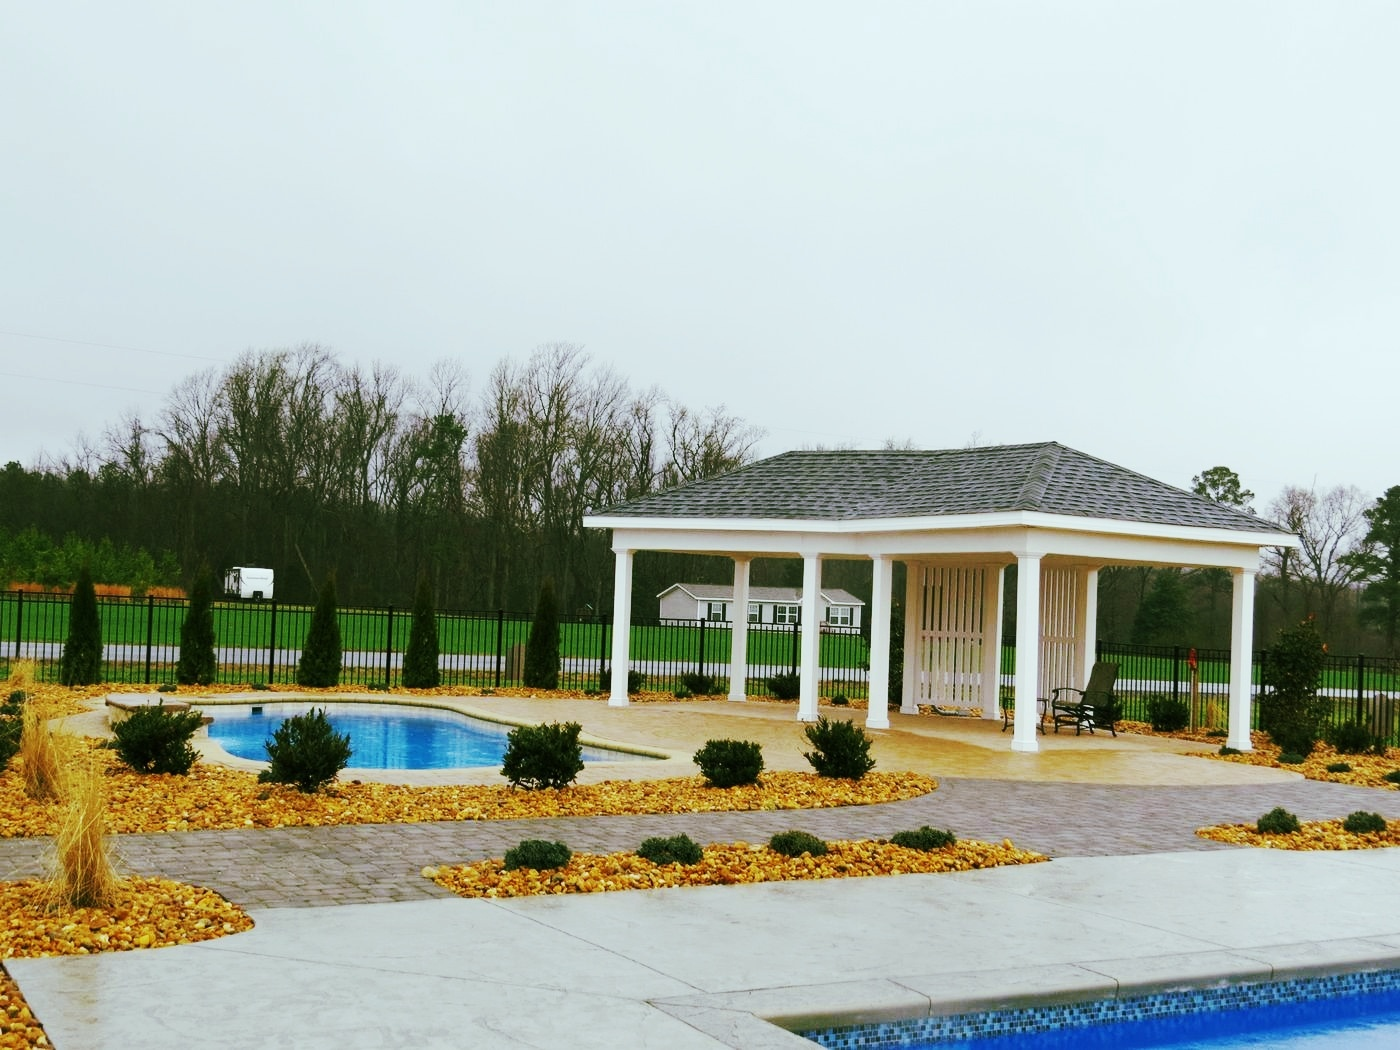 fiberglass pool with a permanent pavilion on the patio